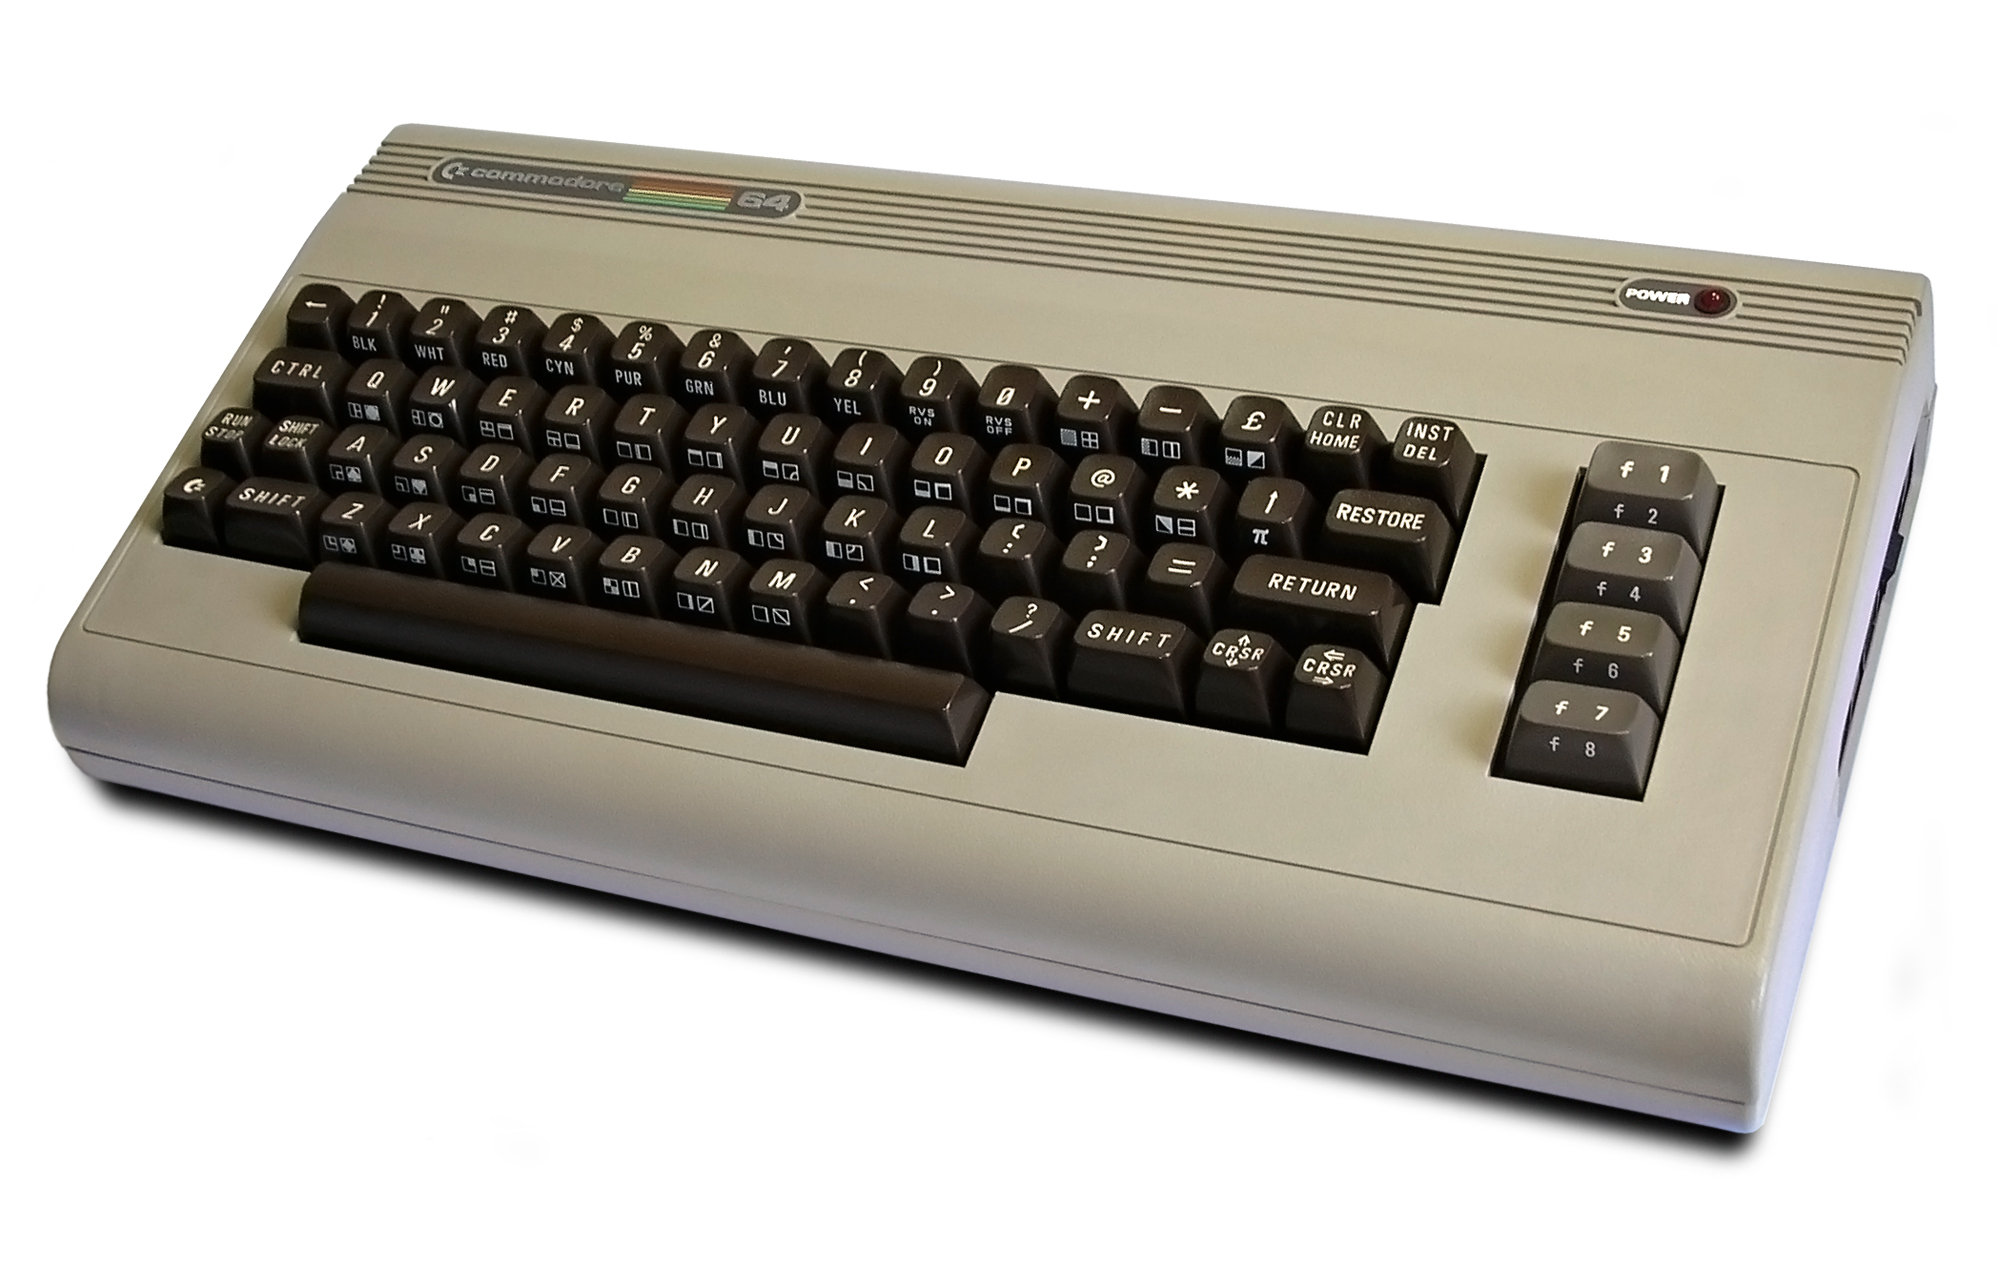 Commodore International – Wikipedia